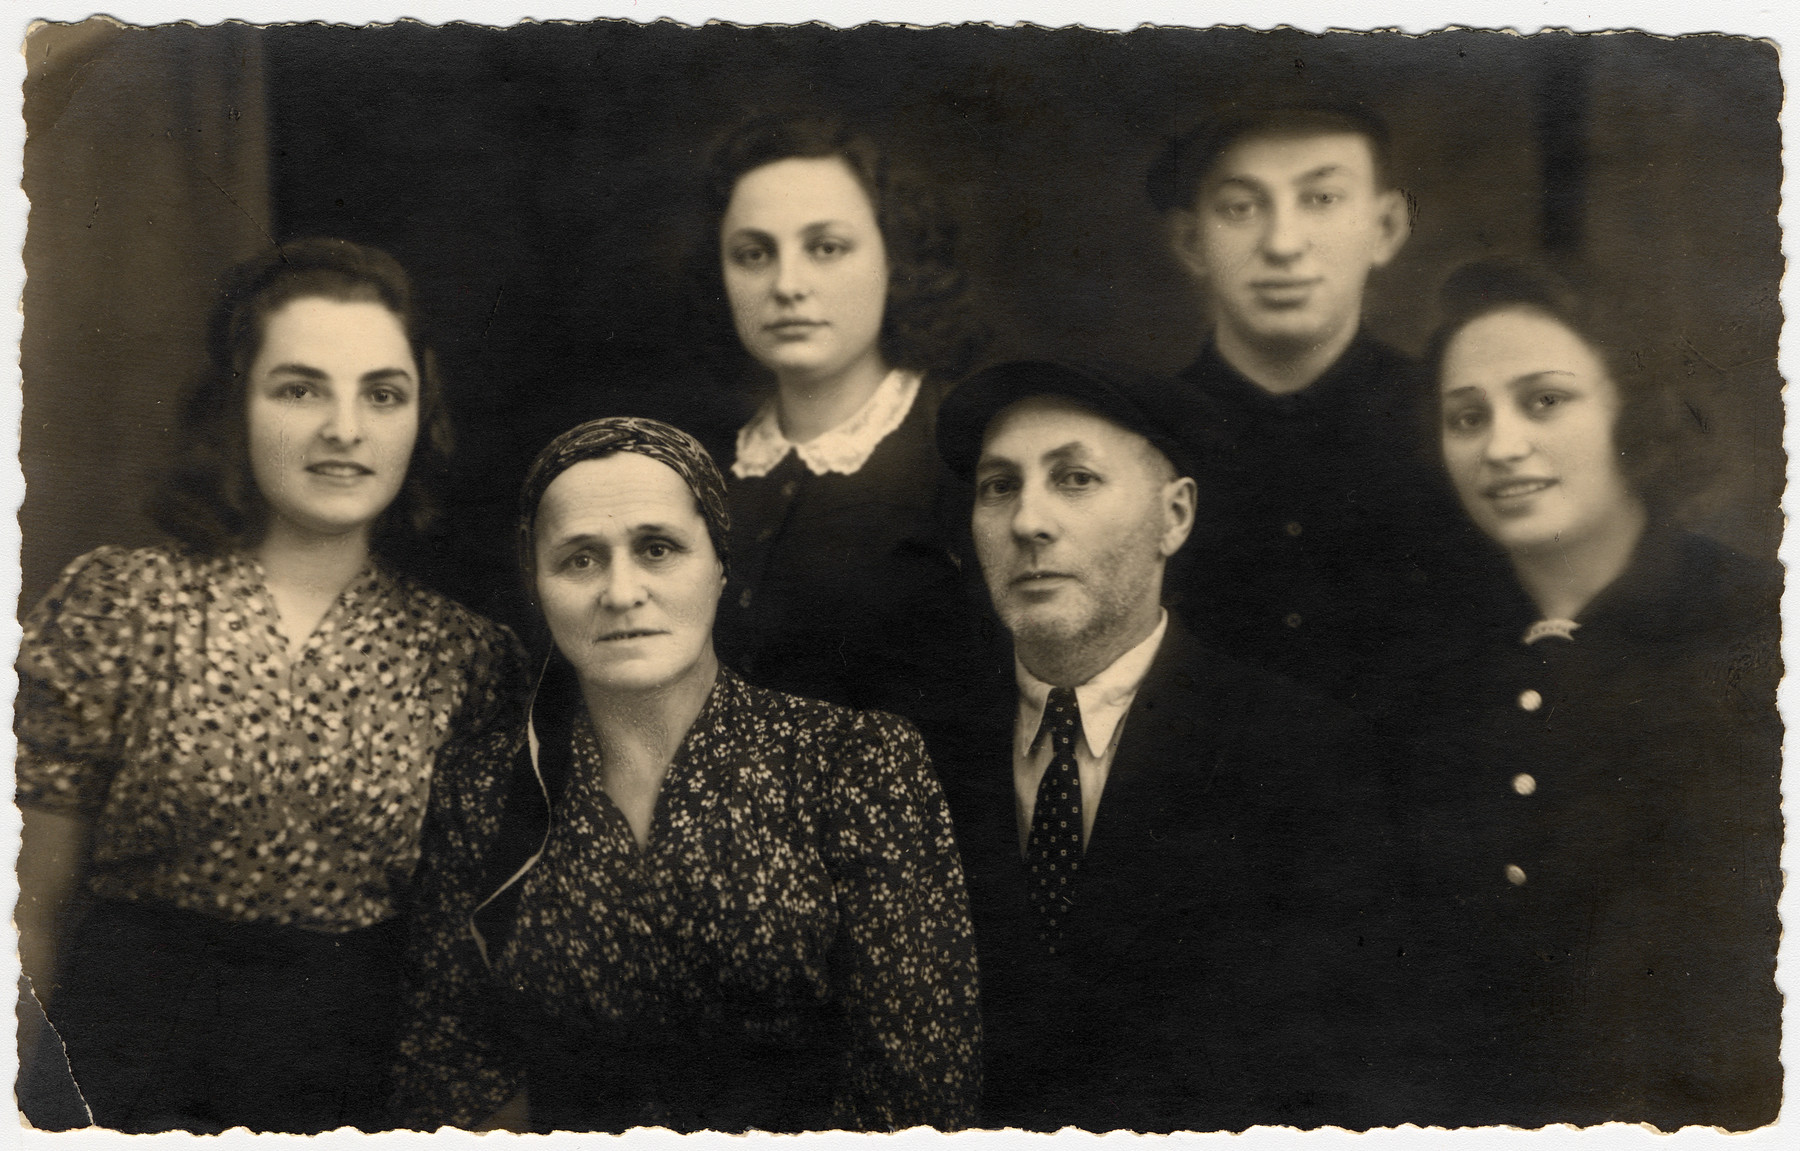 Postwar portrait of the Ass family who survived the war with the Bielski partisans.  From left to right are Chana Chamanovitch (their adoptive daughter), Beila, Itka, Yaakov Menachem, Yosef and Esther Ass.